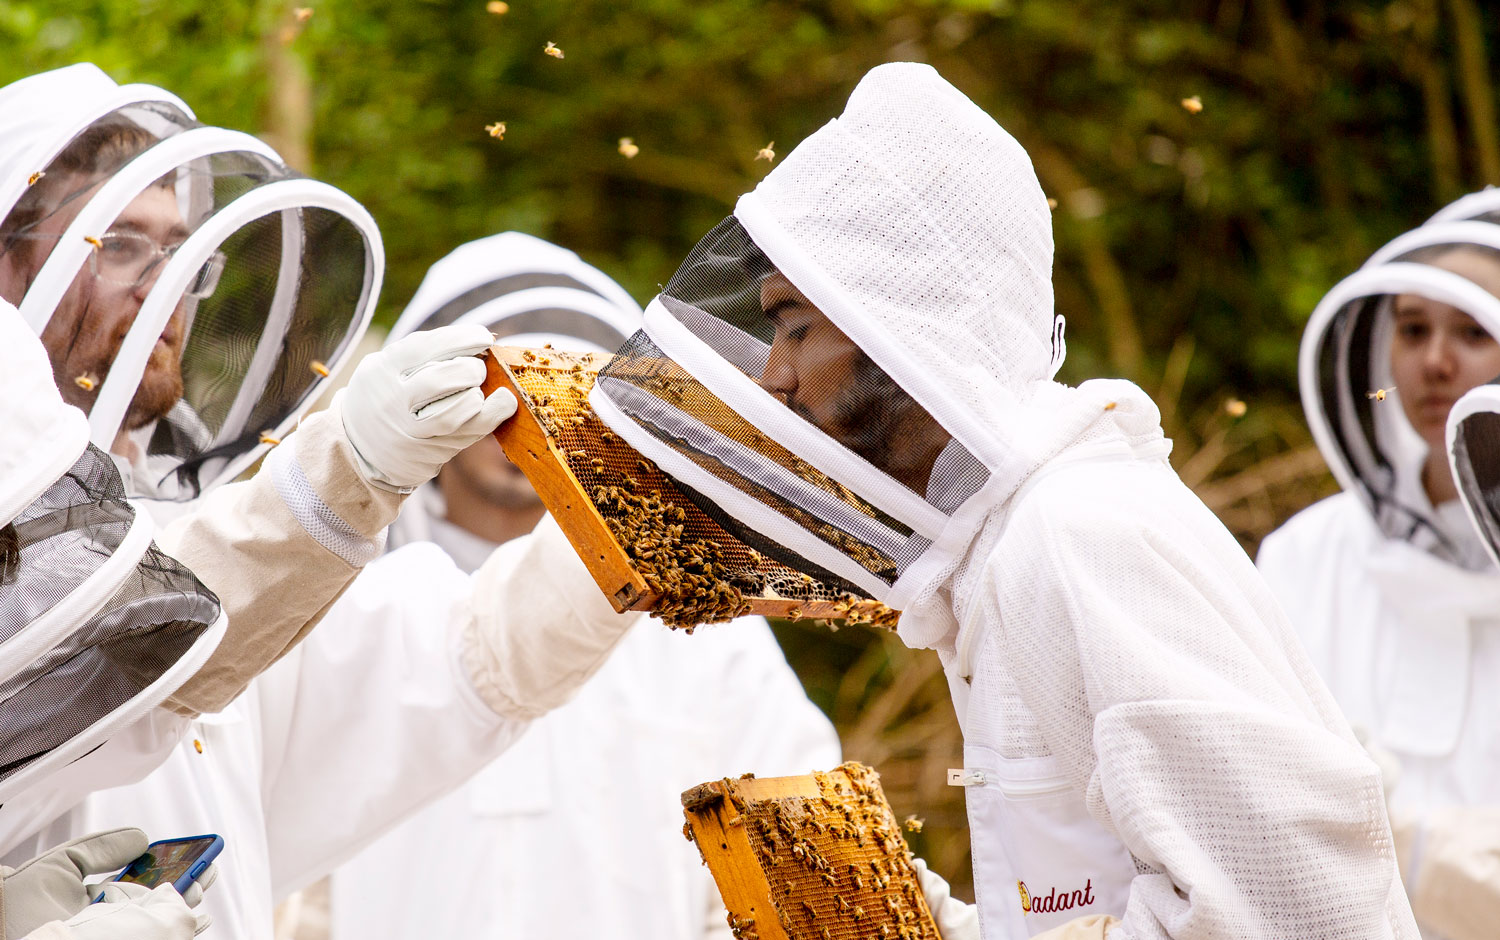 Students research beehives on campus at St. Edward's University